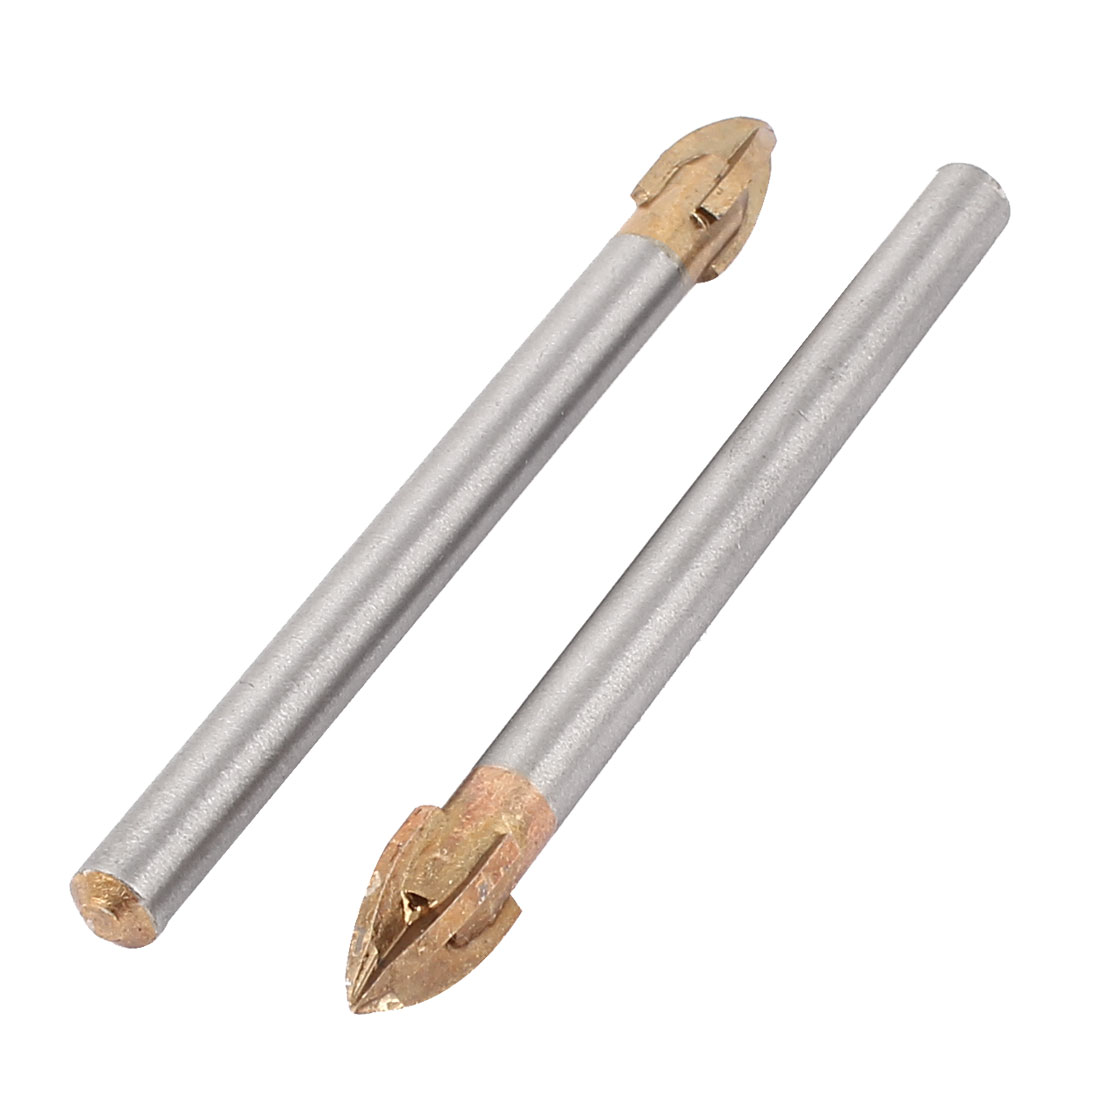 2 Pcs Alloy 8mm Cutting Dia 4 Flute Point Miorror Glass Tile Drill Bit